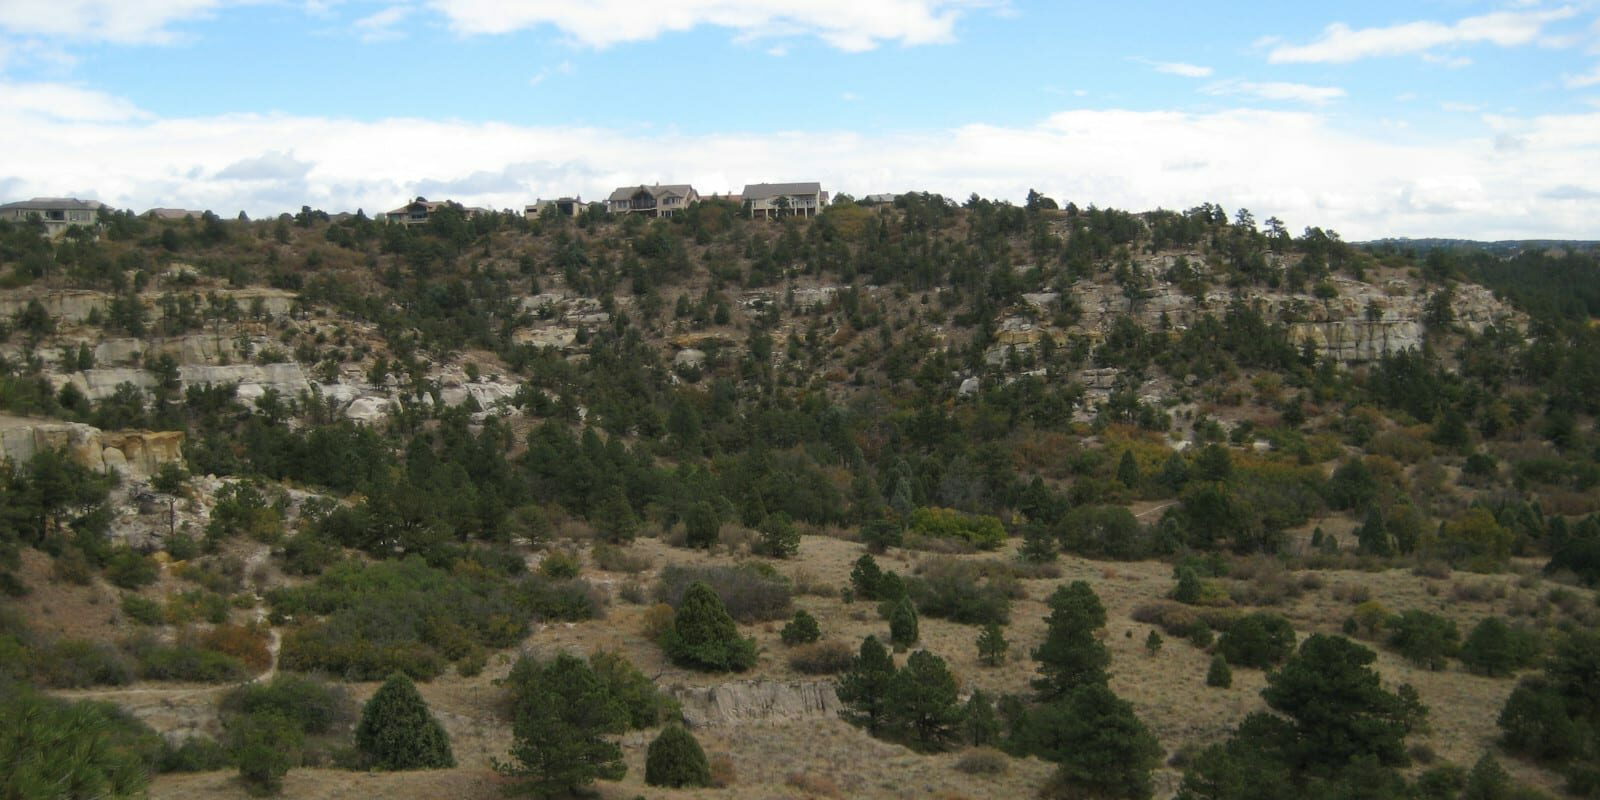 Image of the Austin Bluffs Open Space in Colorado Springs, Colorado